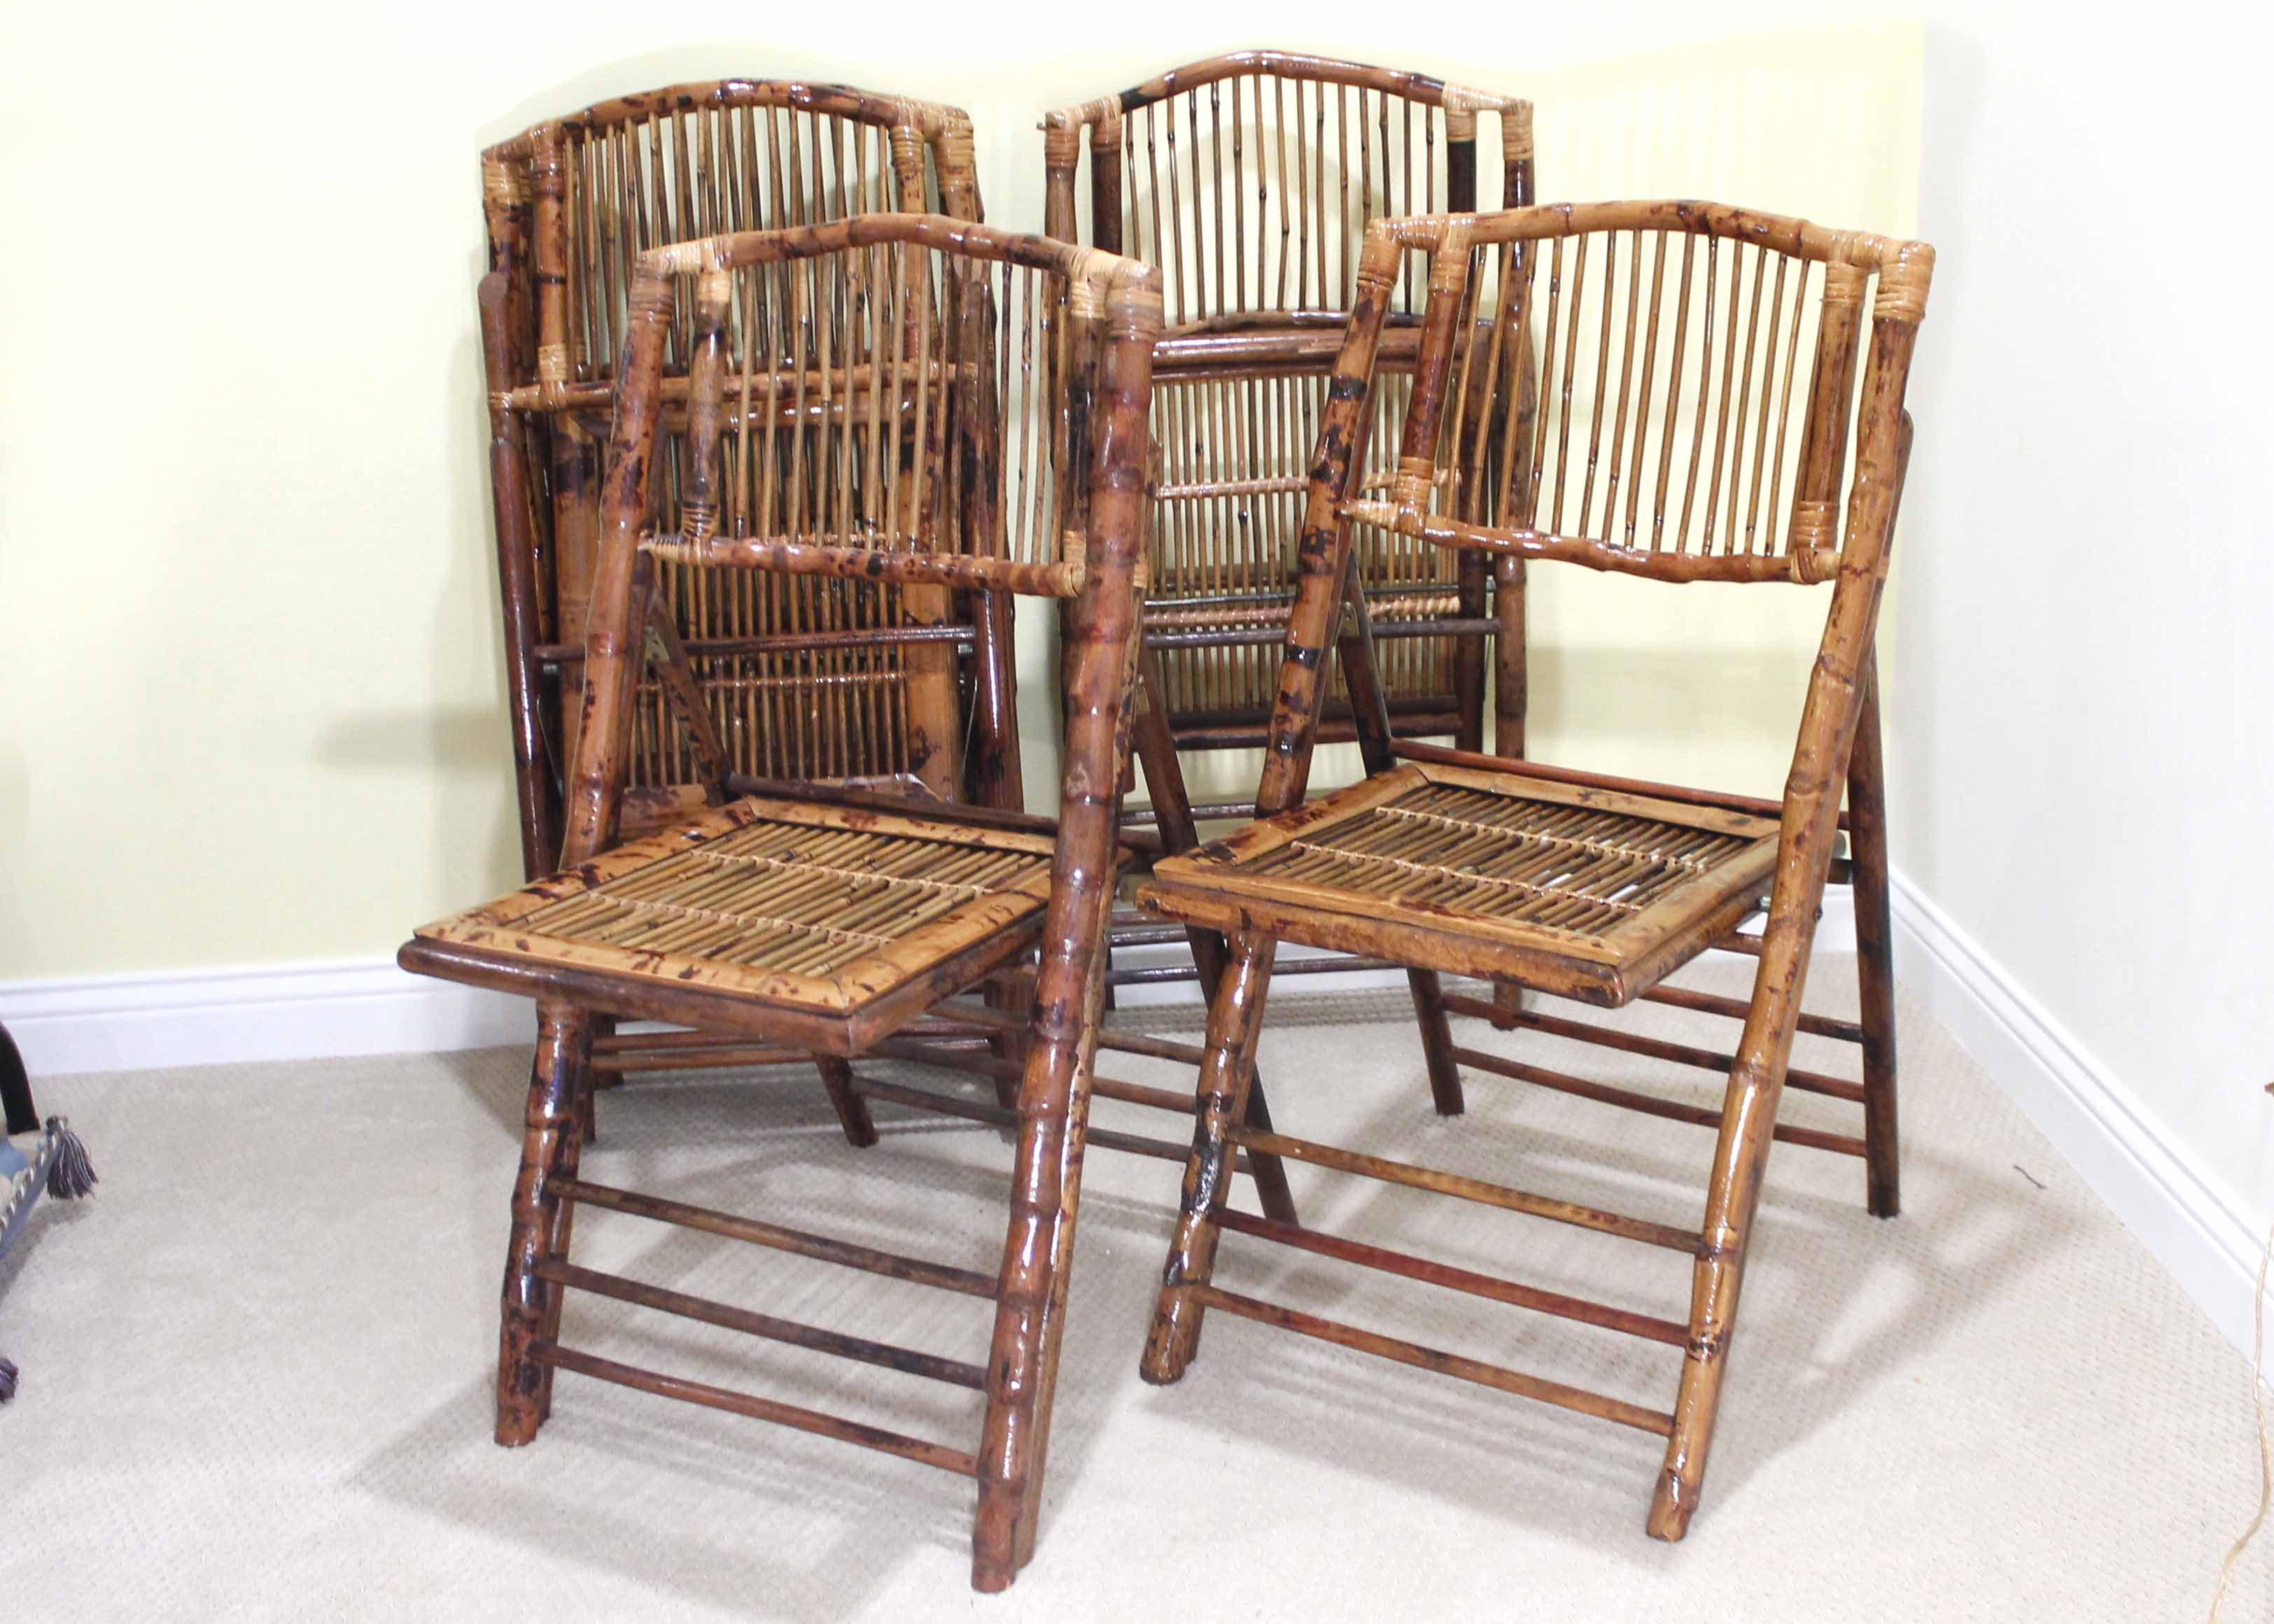 bamboo folding chair antique oak table and chairs for sale five ballard designs inc with cushions ebth